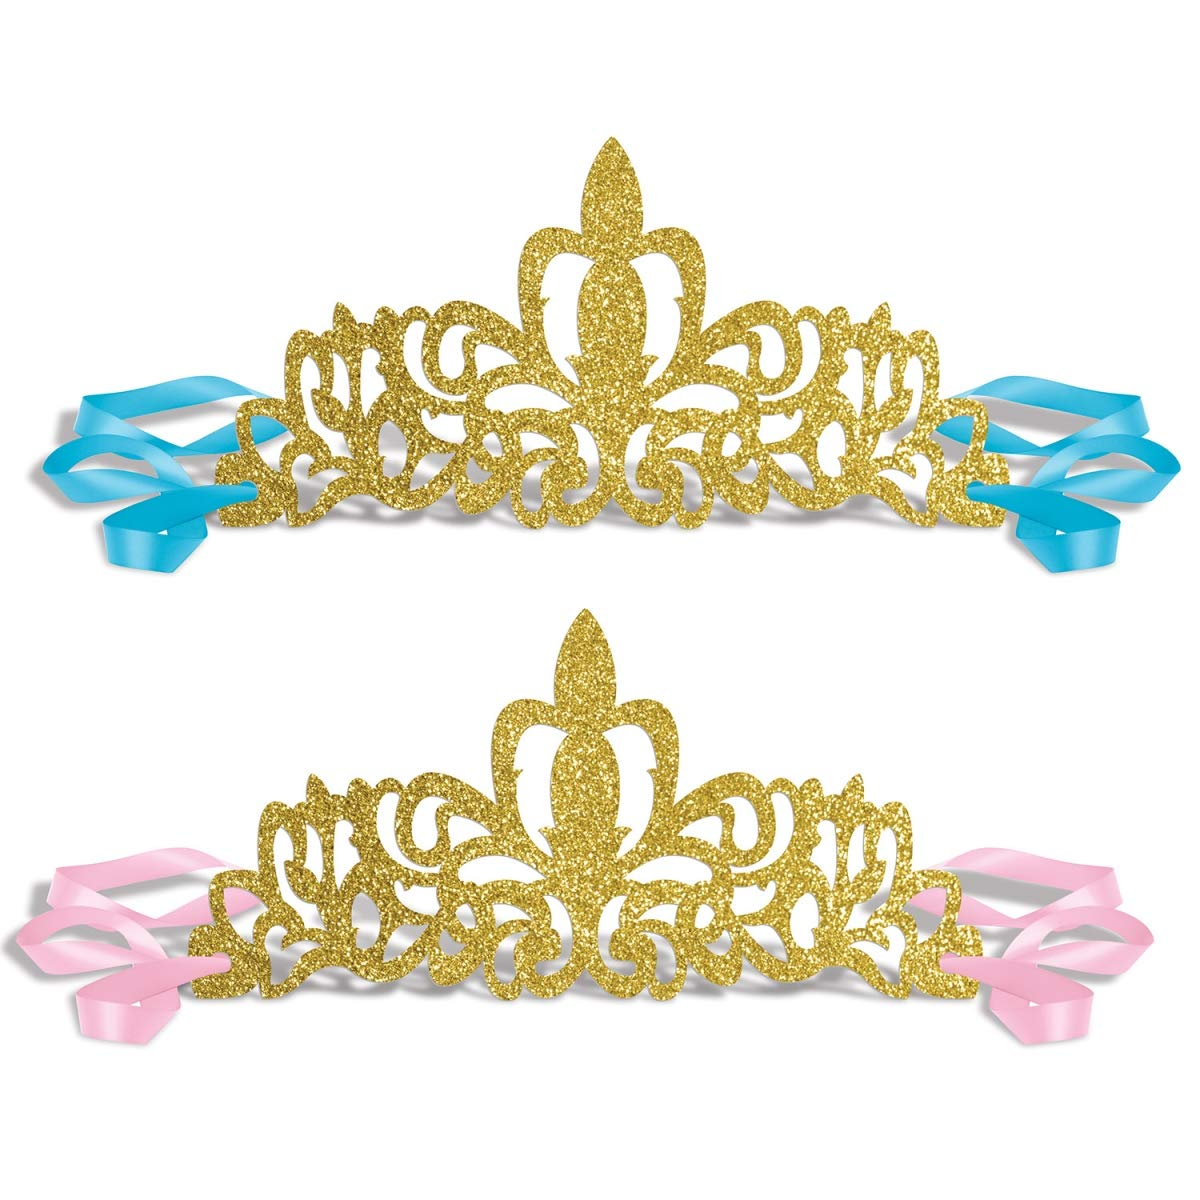 Beistle 60663 Glittered Princess Tiaras - Pack of 12 by Beistle (Image #1)